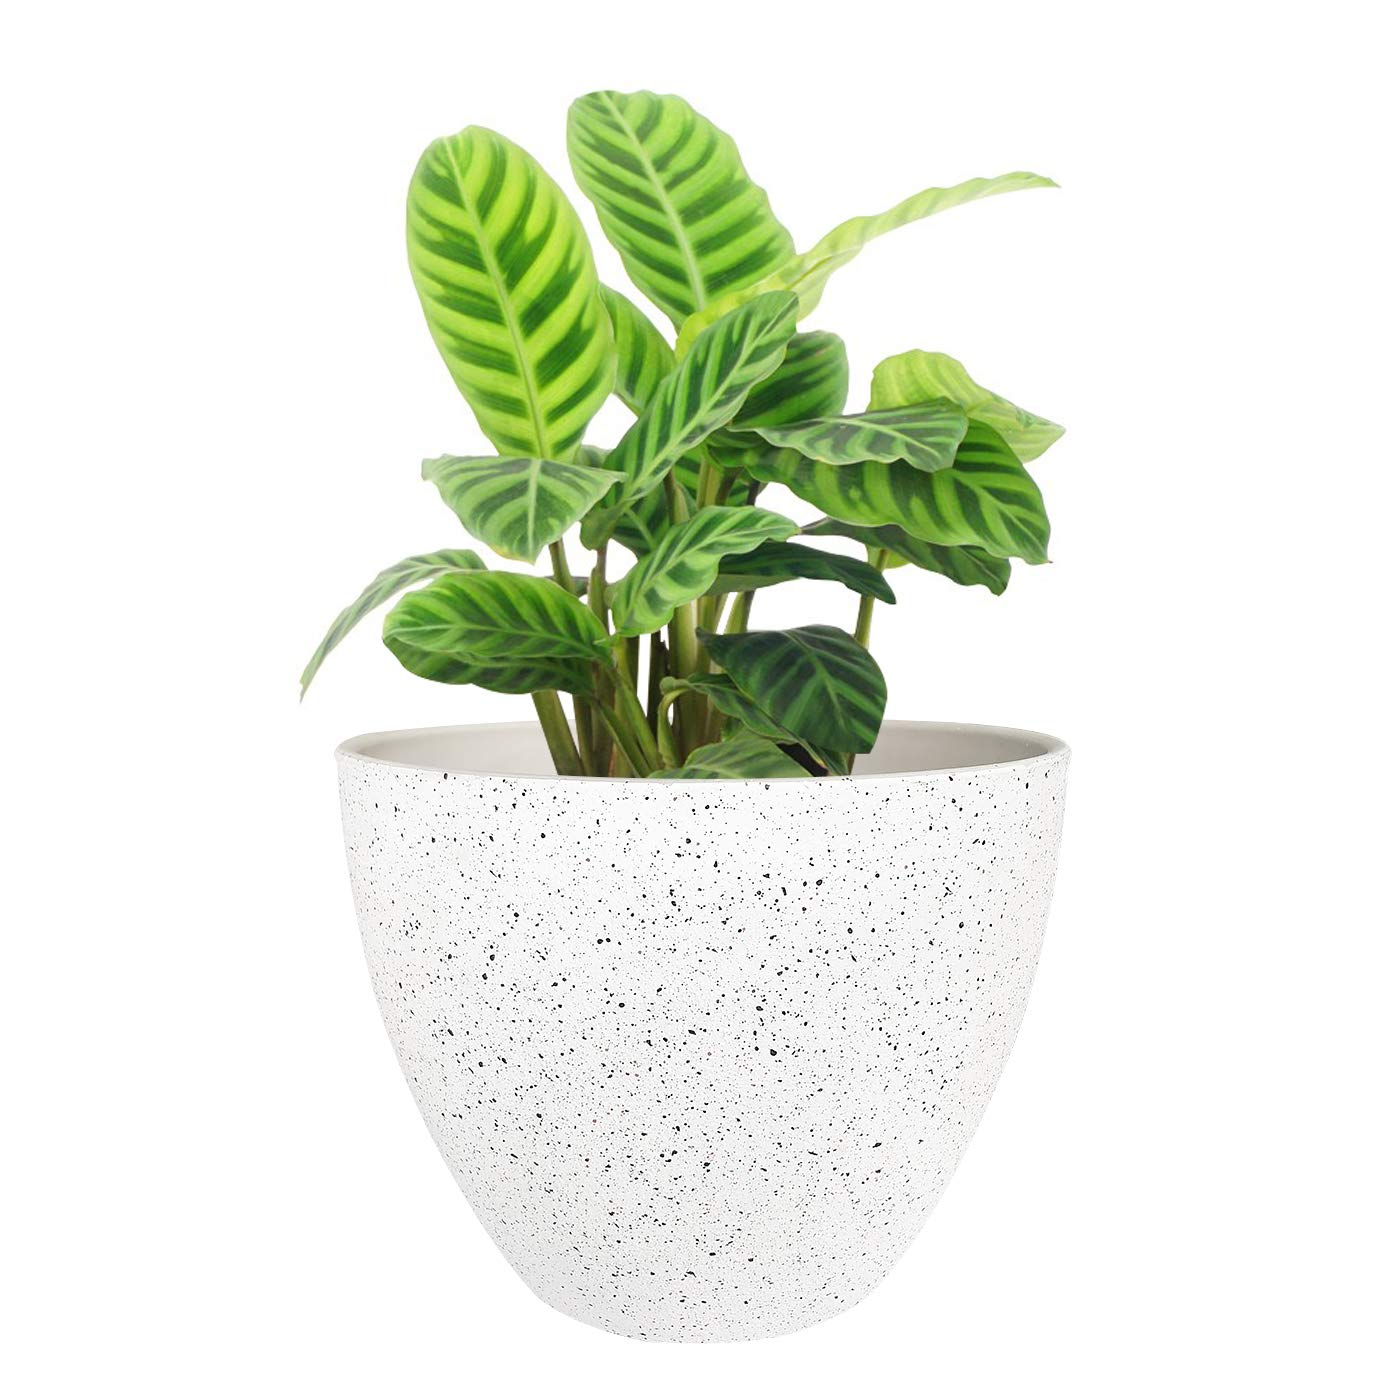 Flower Pots Outdoor Indoor Garden Planters, Resin Plant Containers with Drain Hole, Speckled White (8.6 inches, 1 Pack) …